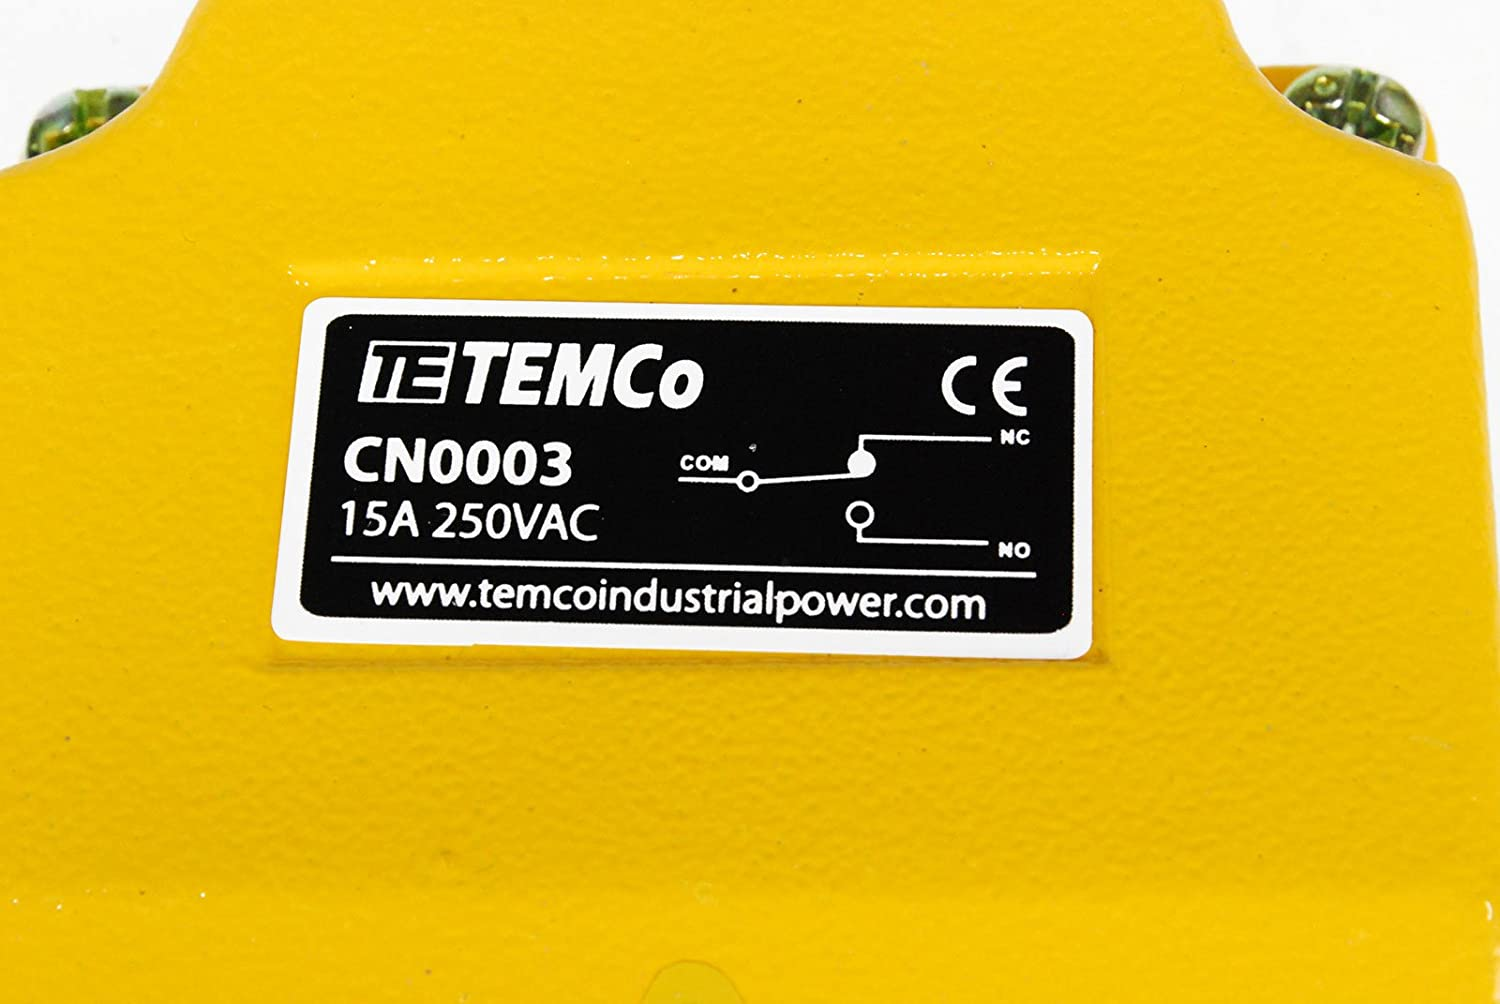 TEMCo Heavy Duty Foot Switch CN0003 Cast Aluminum Foot Switch 15A SPDT Electric Pedal Momentary 5 Year Warranty